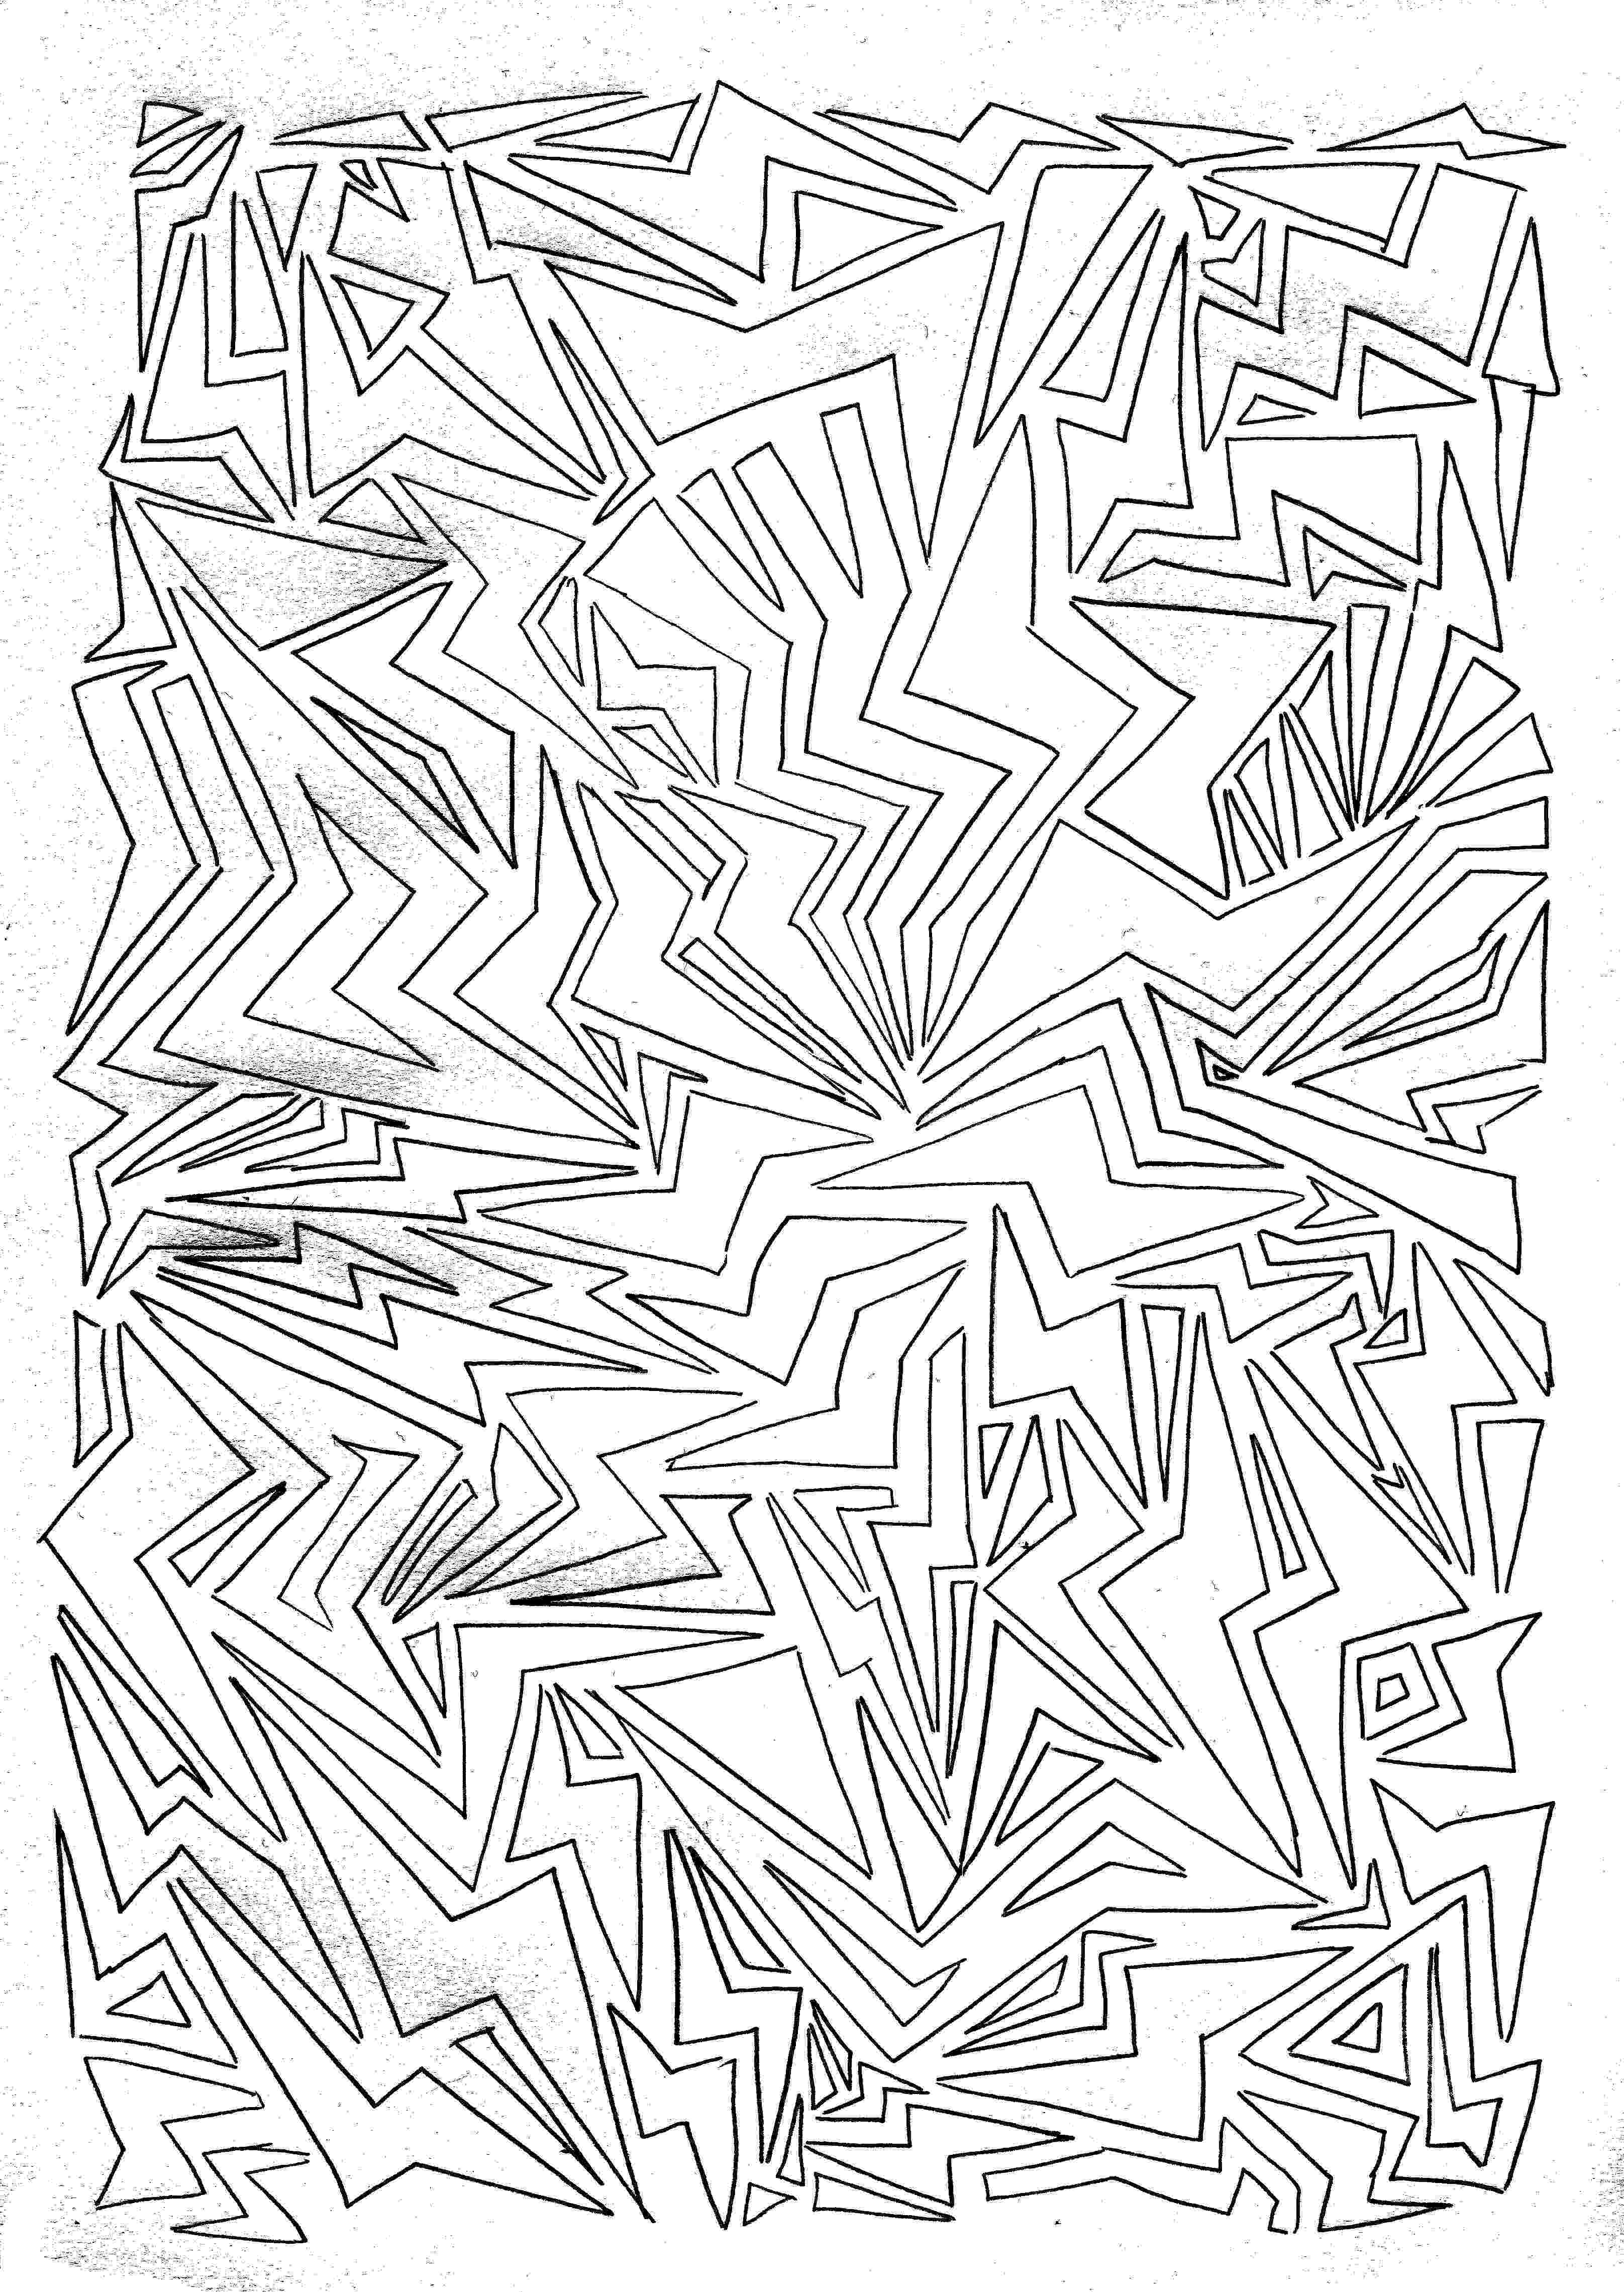 colouring patterns calming patterns for adults who color live your life in colouring patterns